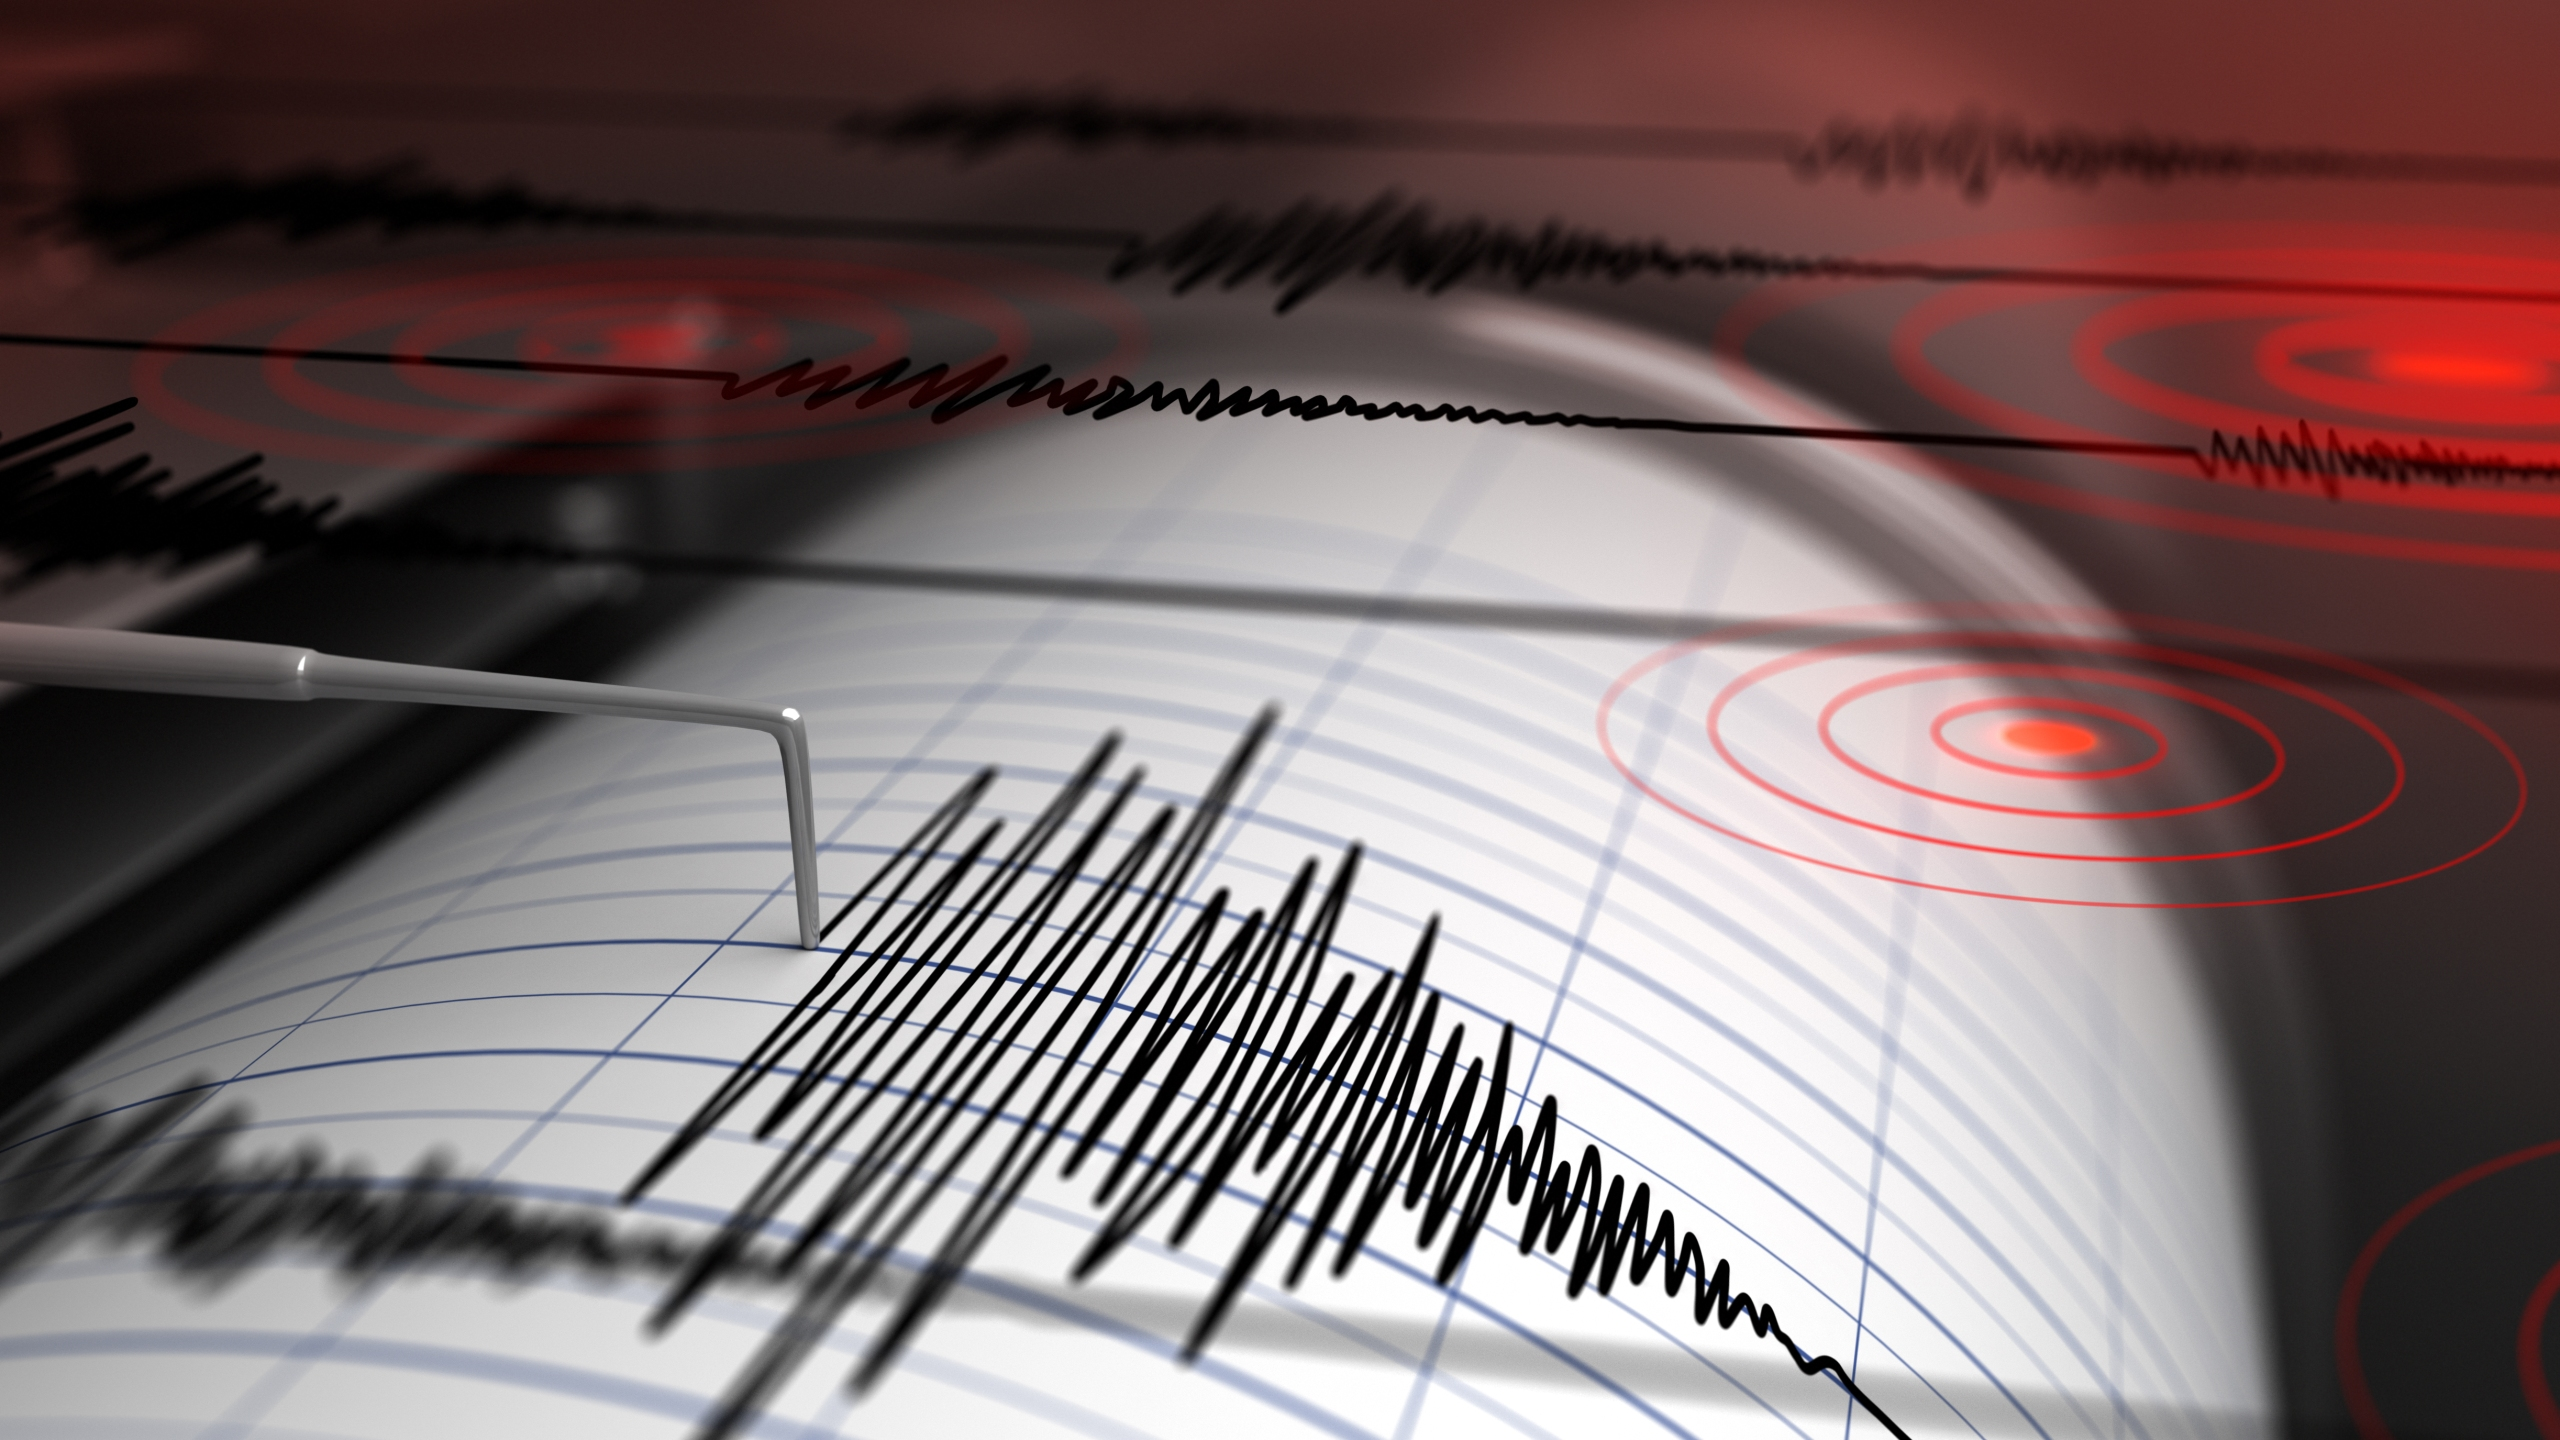 Graphic of seismograph